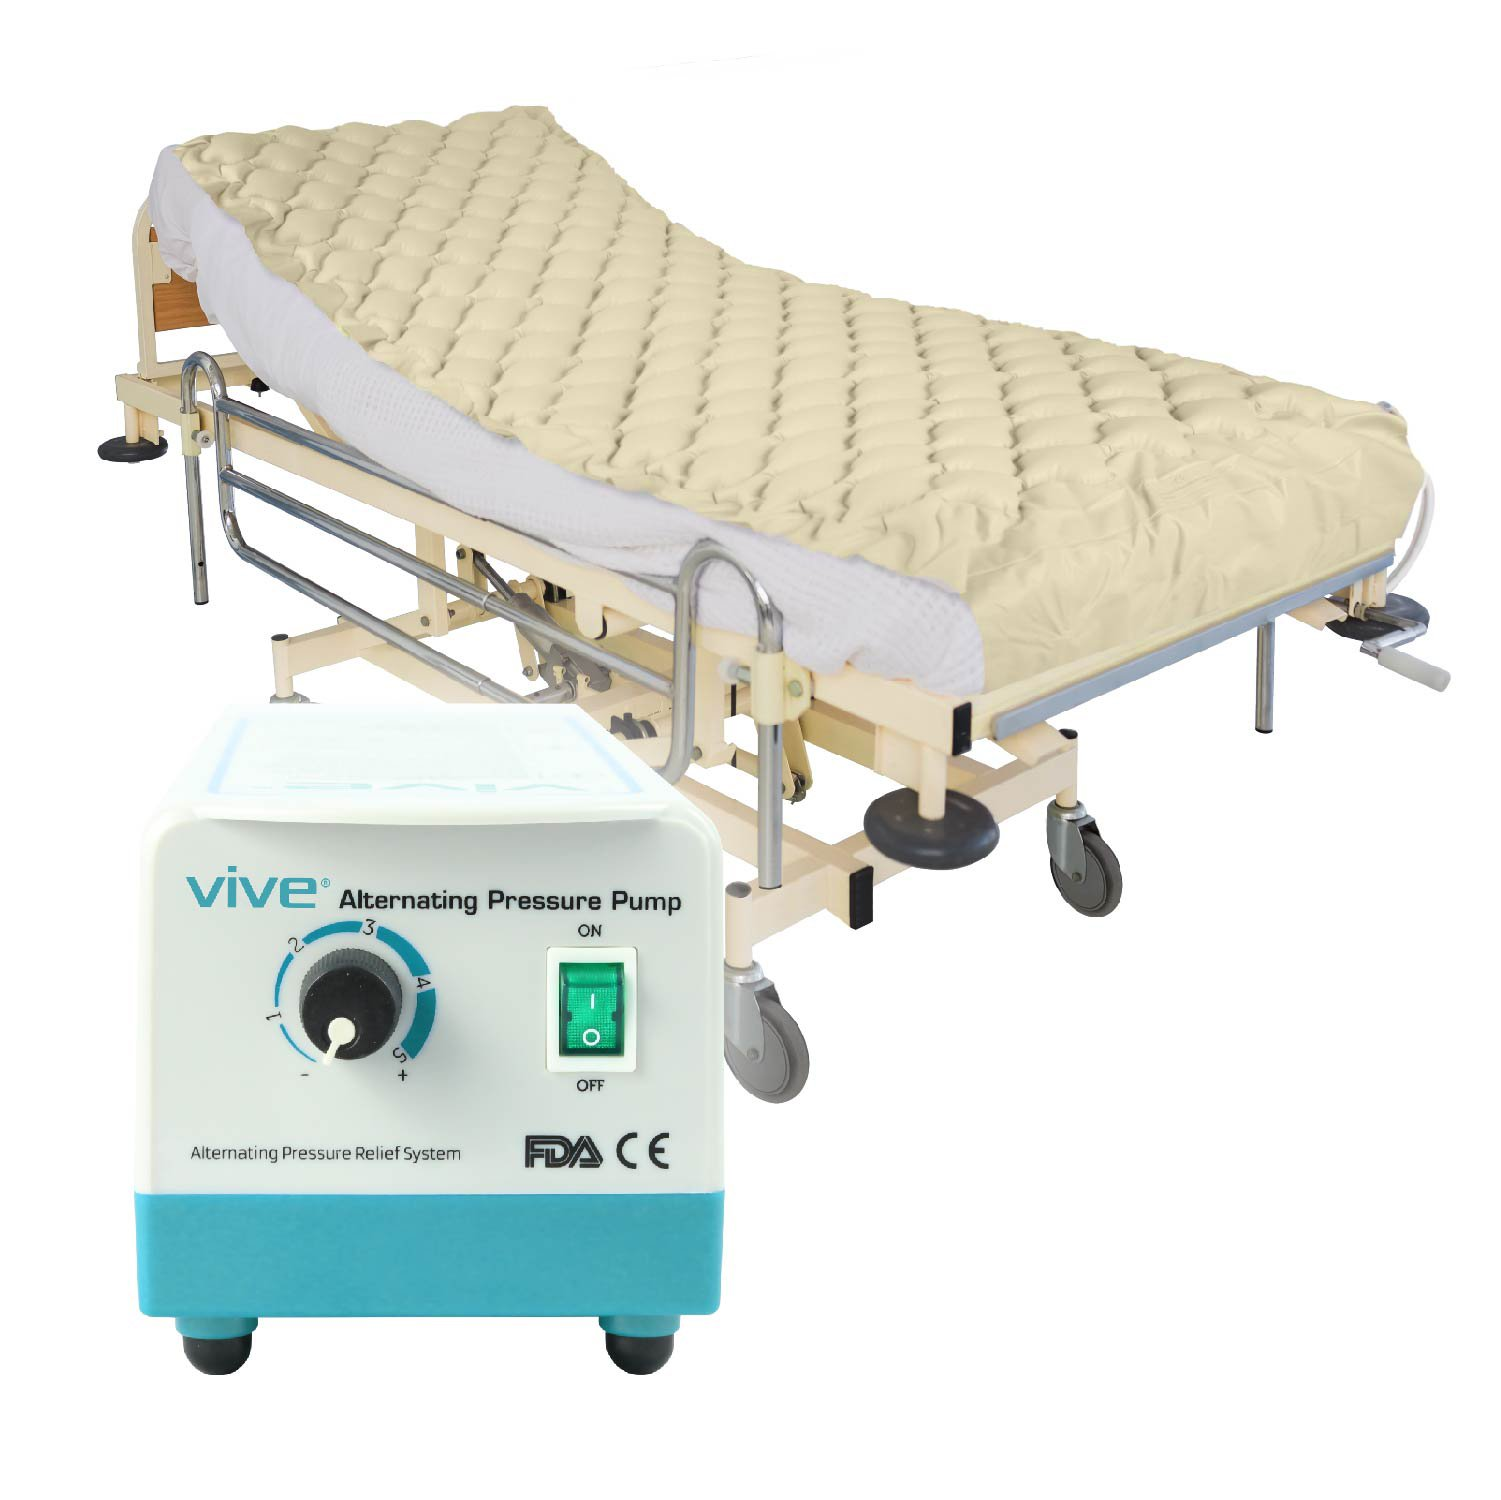 Alternating Pressure Mattress by Vive - Includes Electric Pump & Mattress Pad - Inflatable Bed Pad for Pressure Ulcer and Pressure Sore Treatment - Fits Standard Hospital Beds